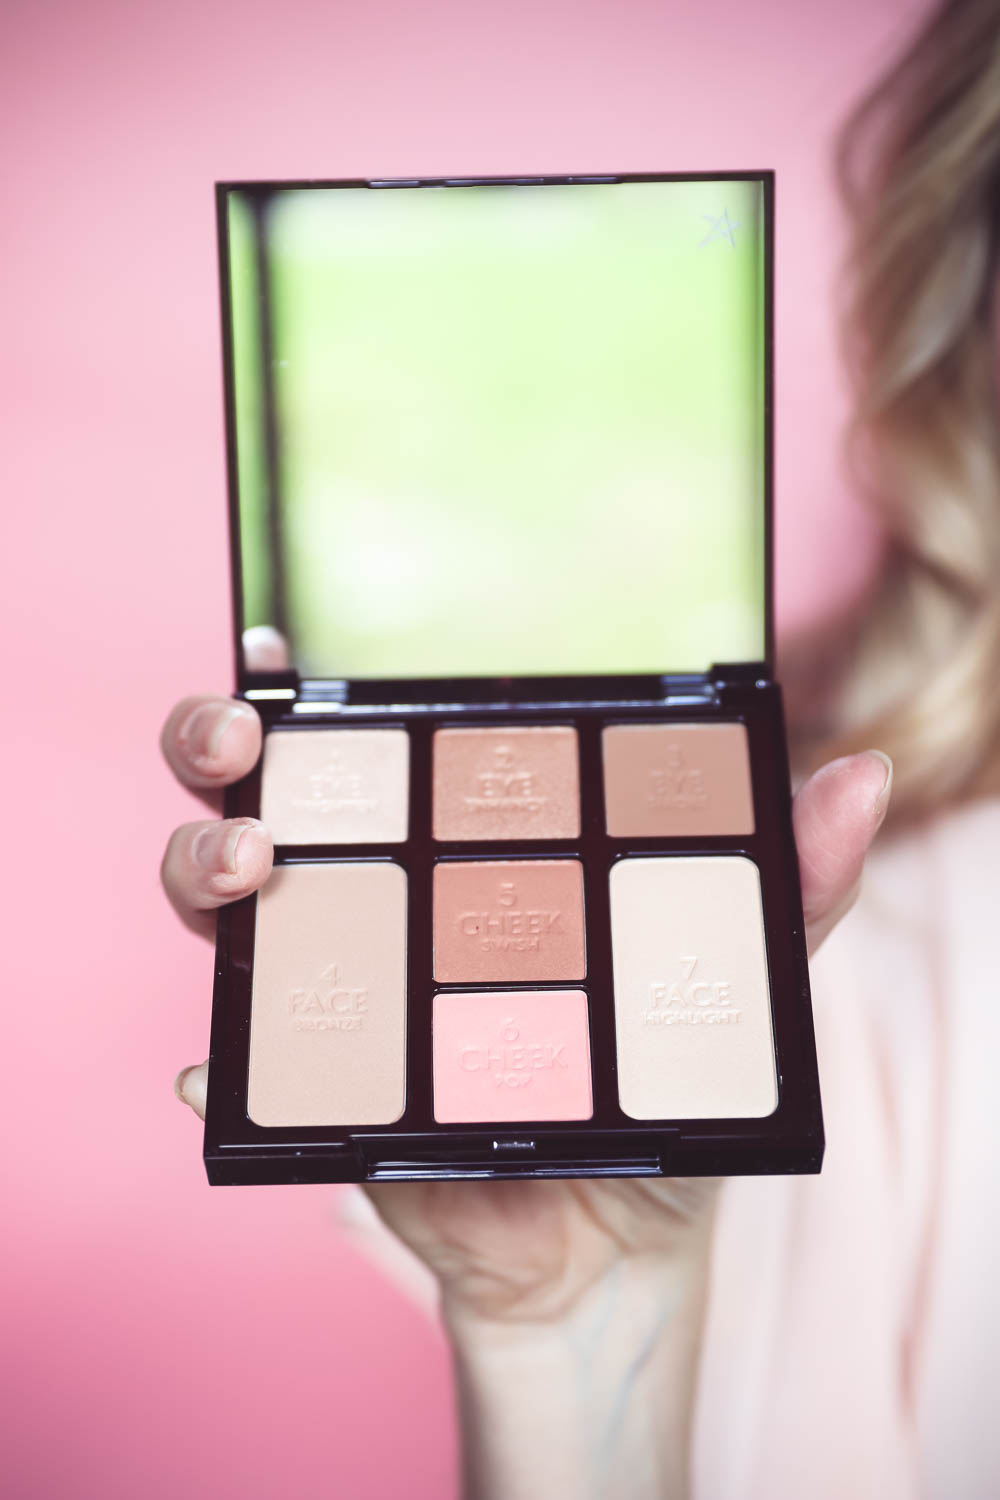 5-Minute makeup routine featuring charlotte tilbury instant look in a palette